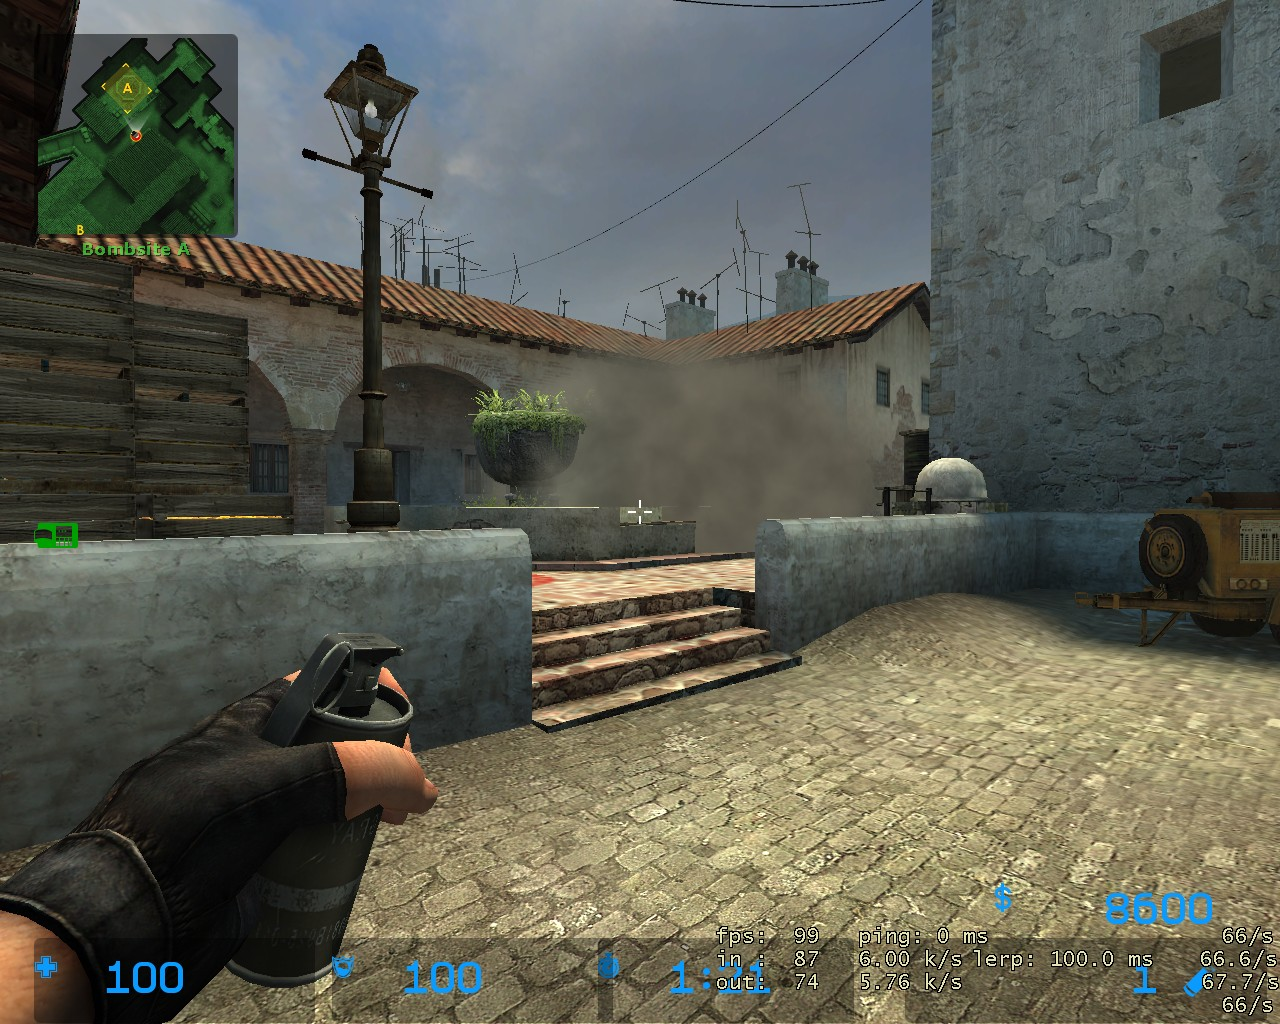 Ian's friend prime-de_inferno-banan-car-jump-smoke-ffect-jpg